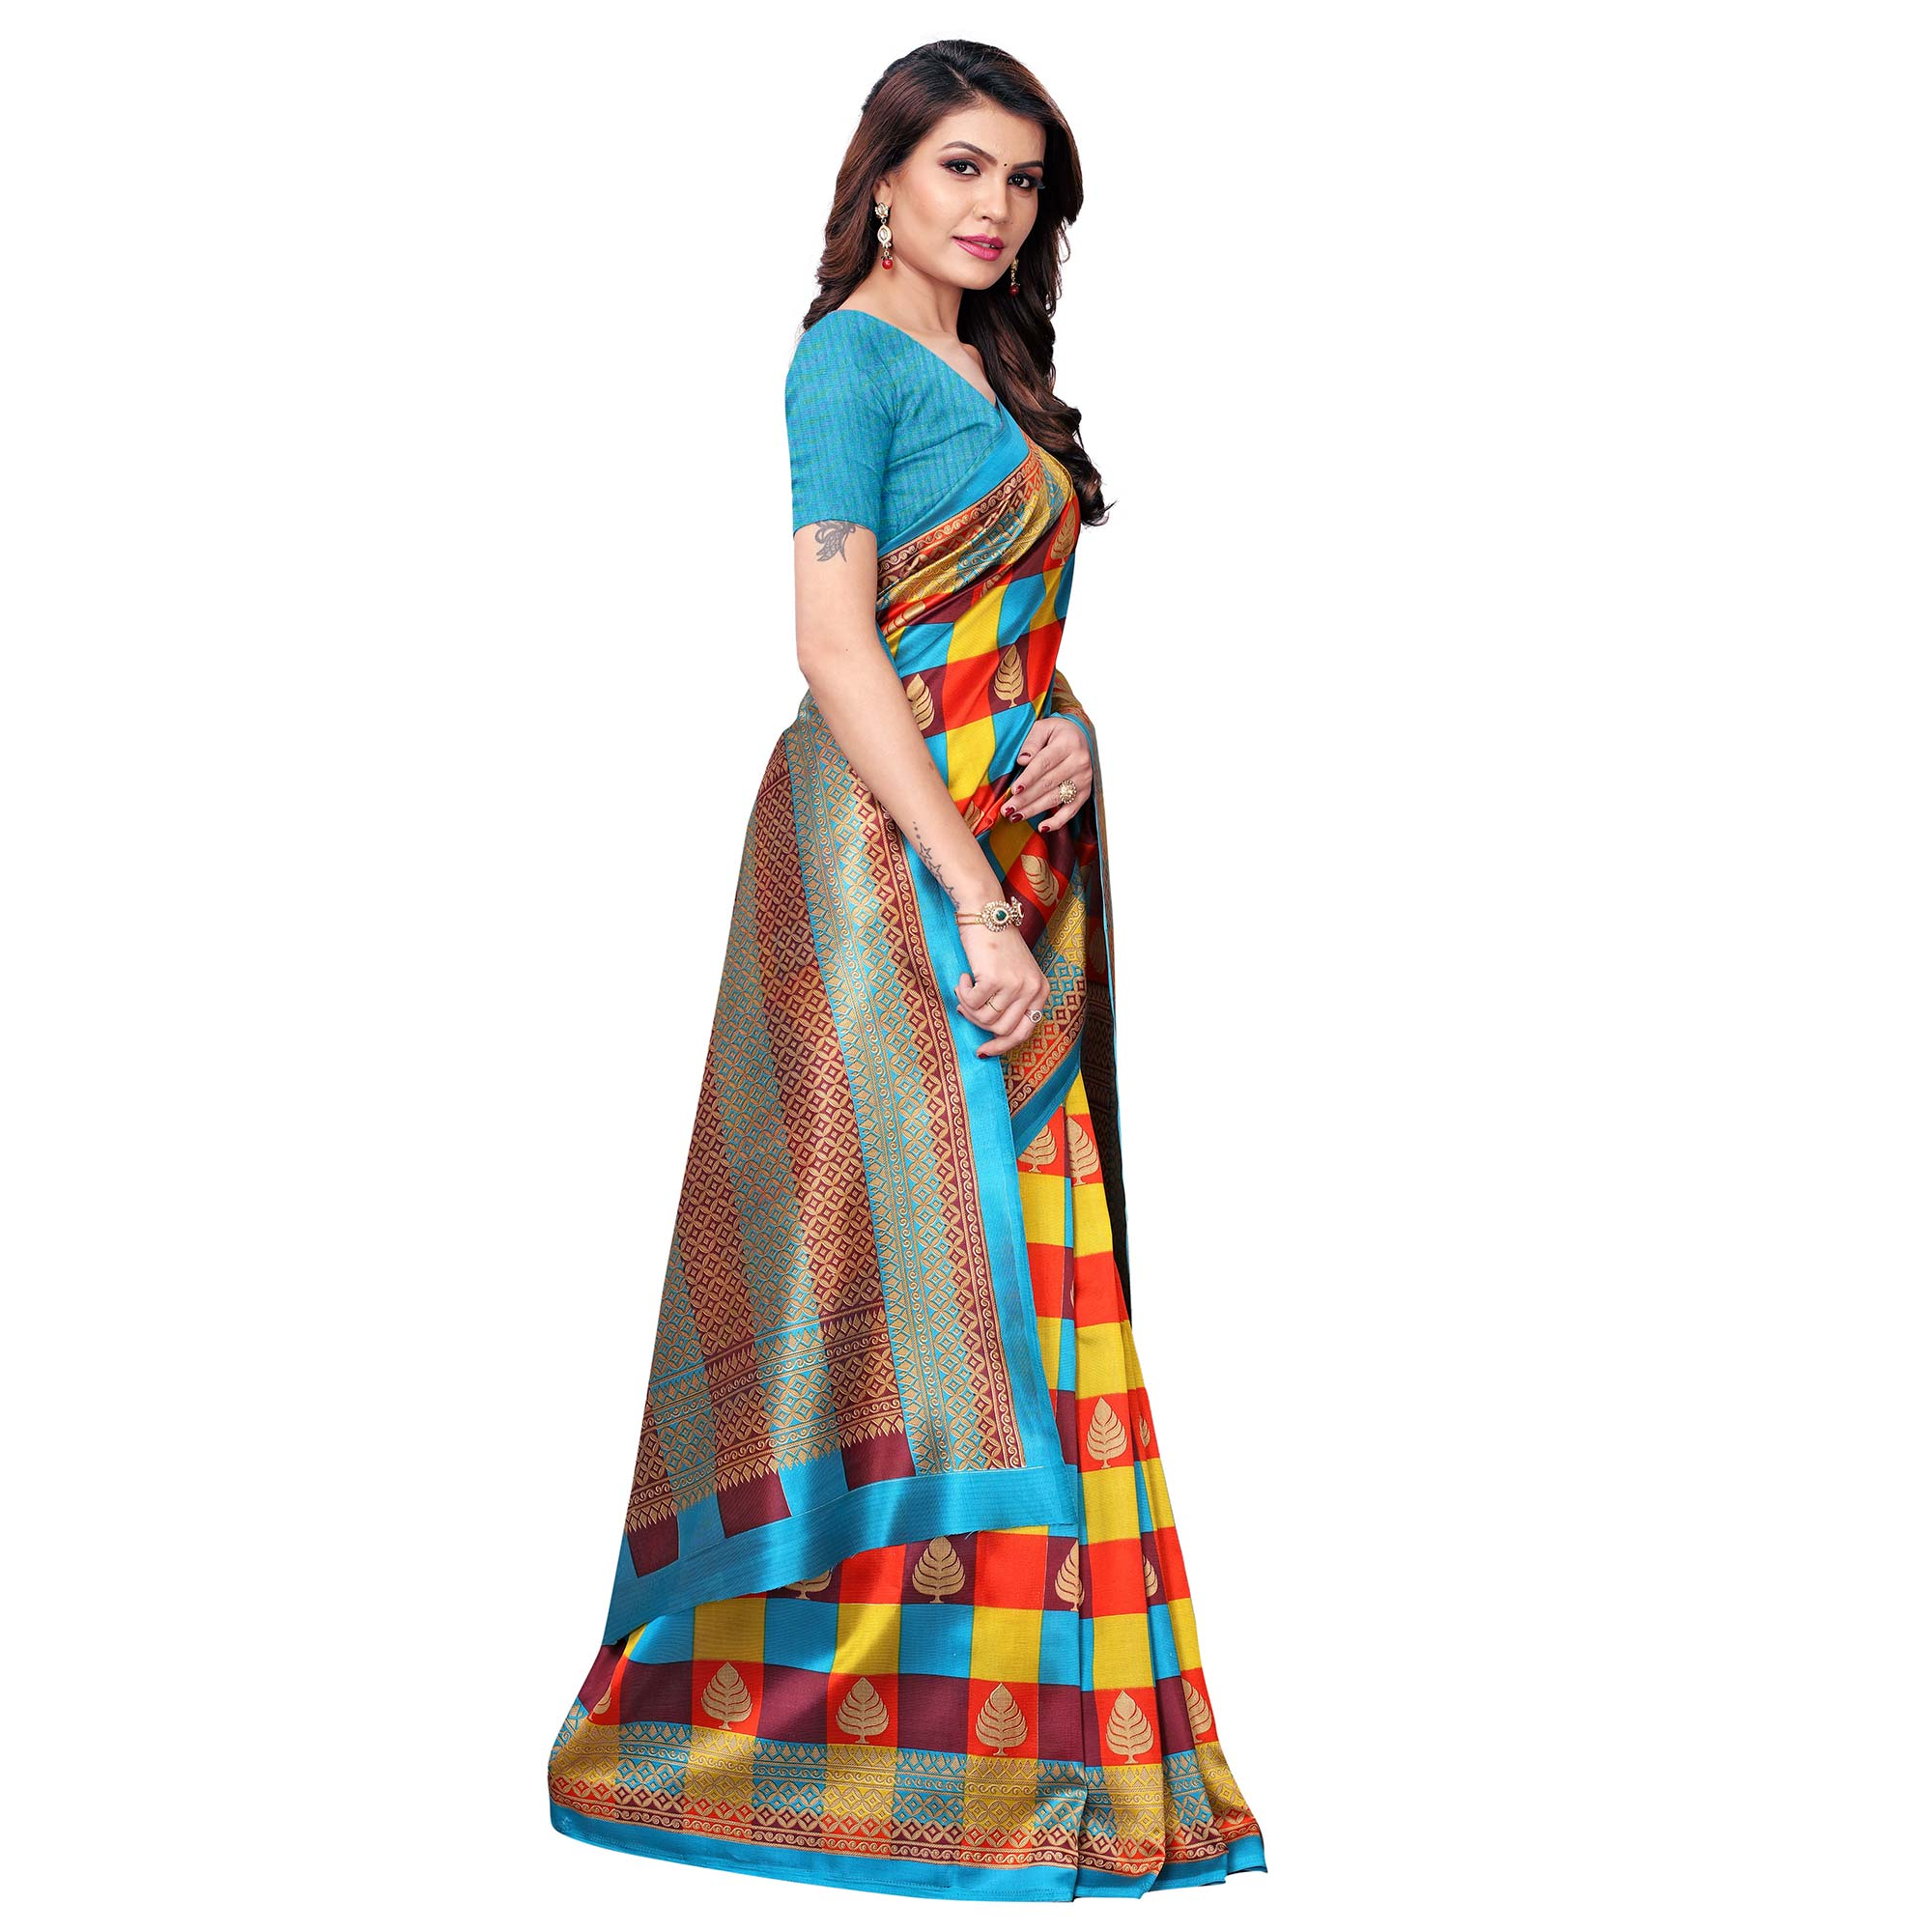 Marvellous Blue - Multi Colored Casual Wear Printed Art Silk Saree